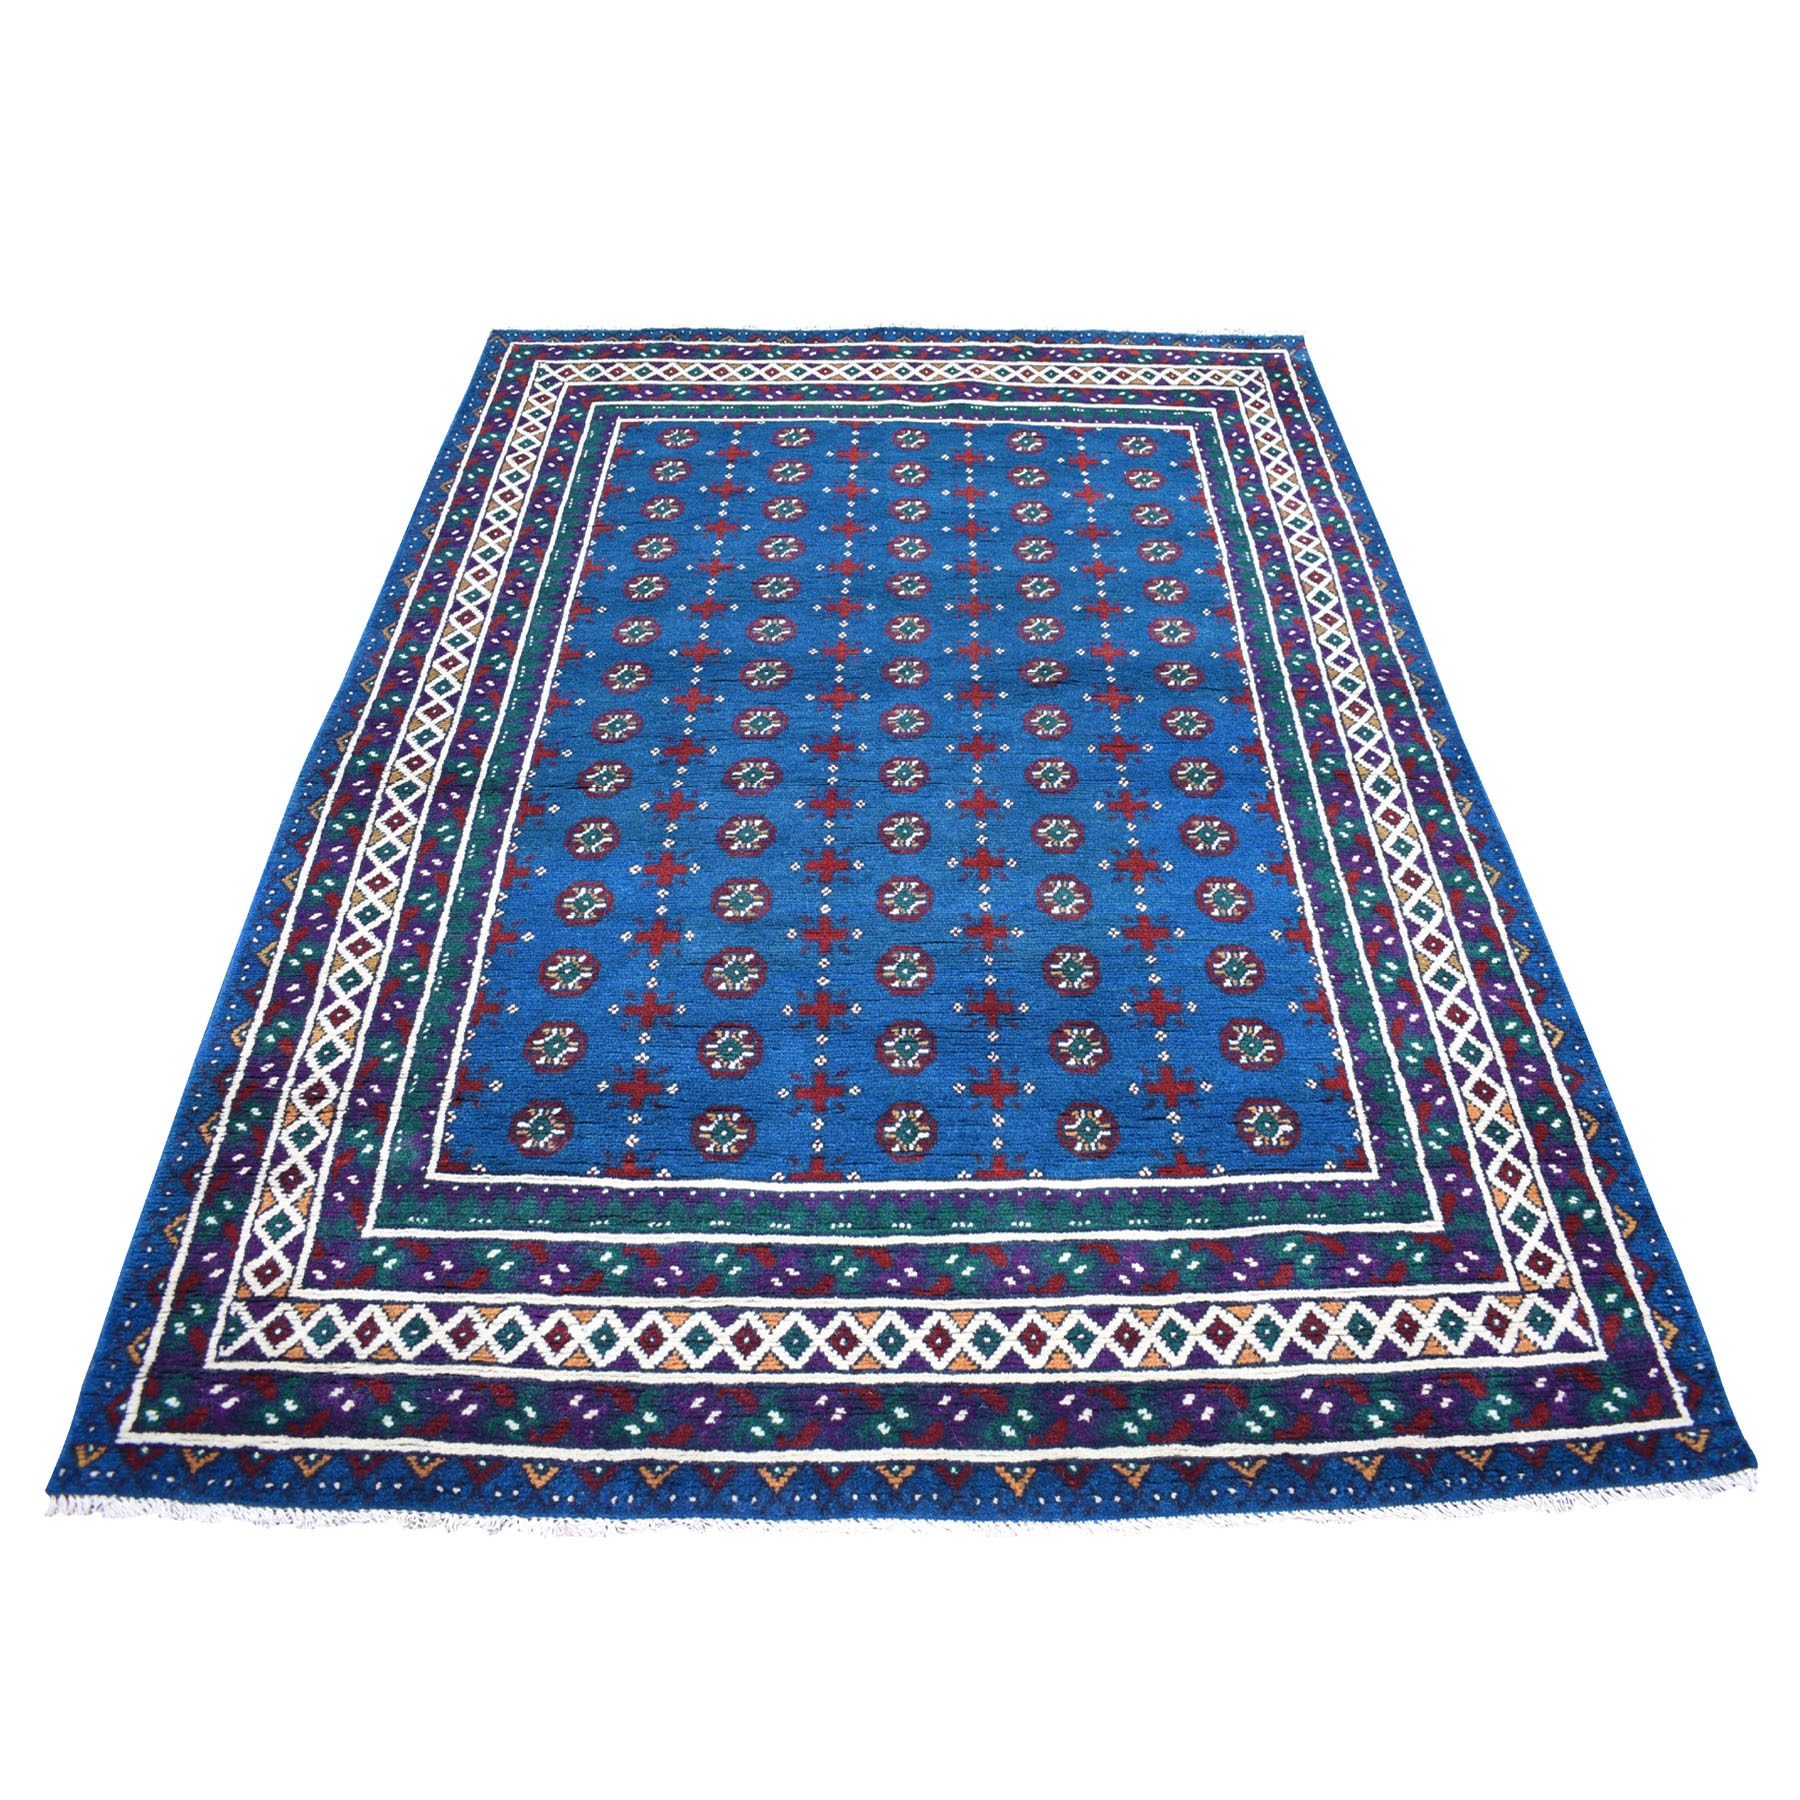 "5'5""x7'8"" Blue All Over Design Colorful Afghan Baluch Hand Knotted Pure Wool Oriental Rug"